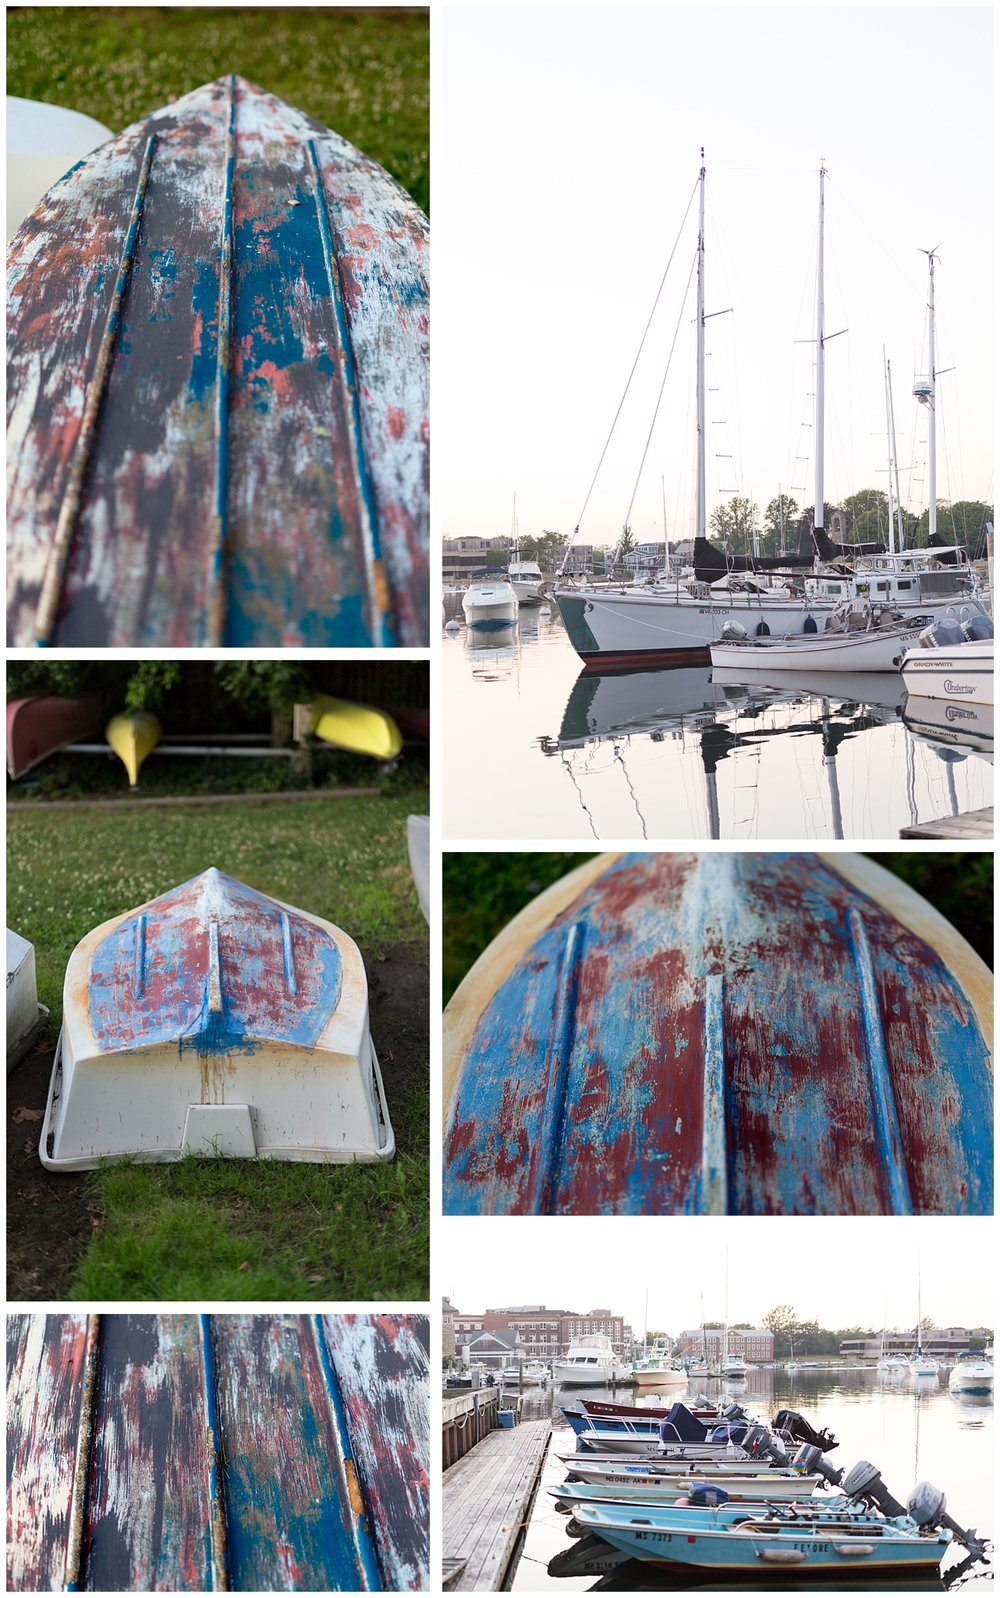 sailboats and peeling pain on rowboat